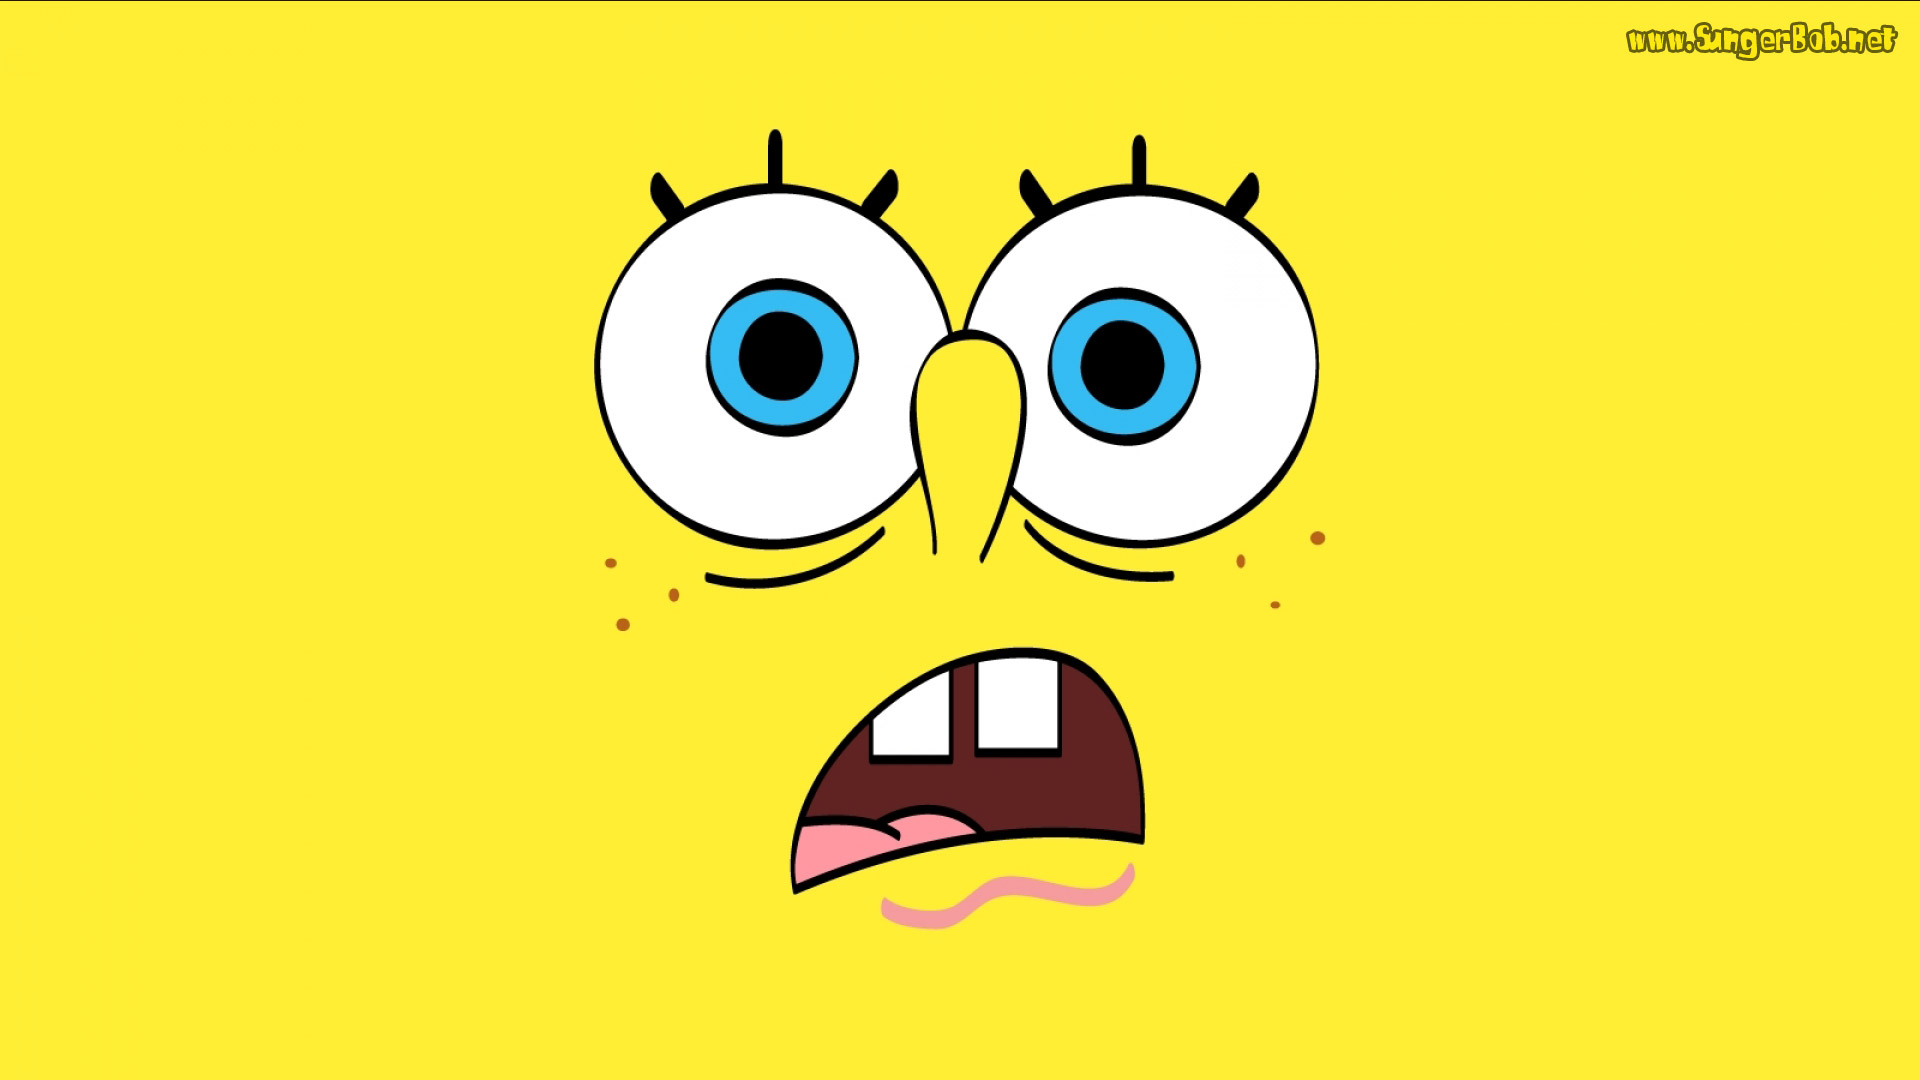 Spongebob Spongebob Squarepants Wallpaper Exo Pinterest 1920x1080